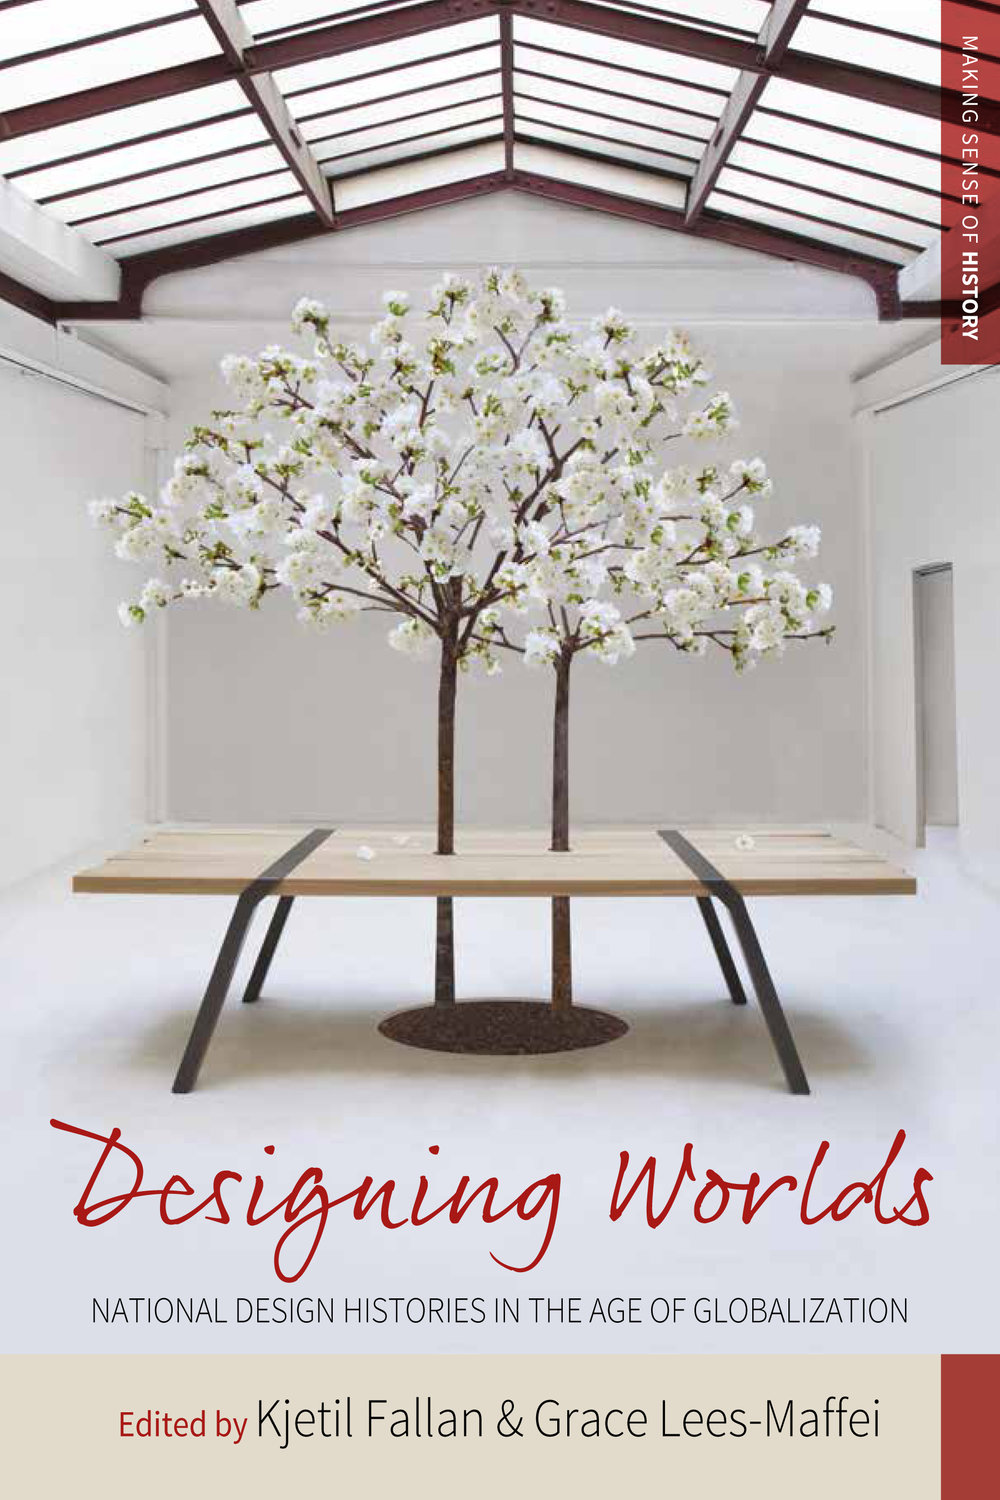 Fallan, K. & G. Lees-Maffei, eds.   Designing Worlds: National Design Histories in an Age of Globalization  . New York: Berghahn, 2016 (hardback and open access editions), 2018 (paperback).